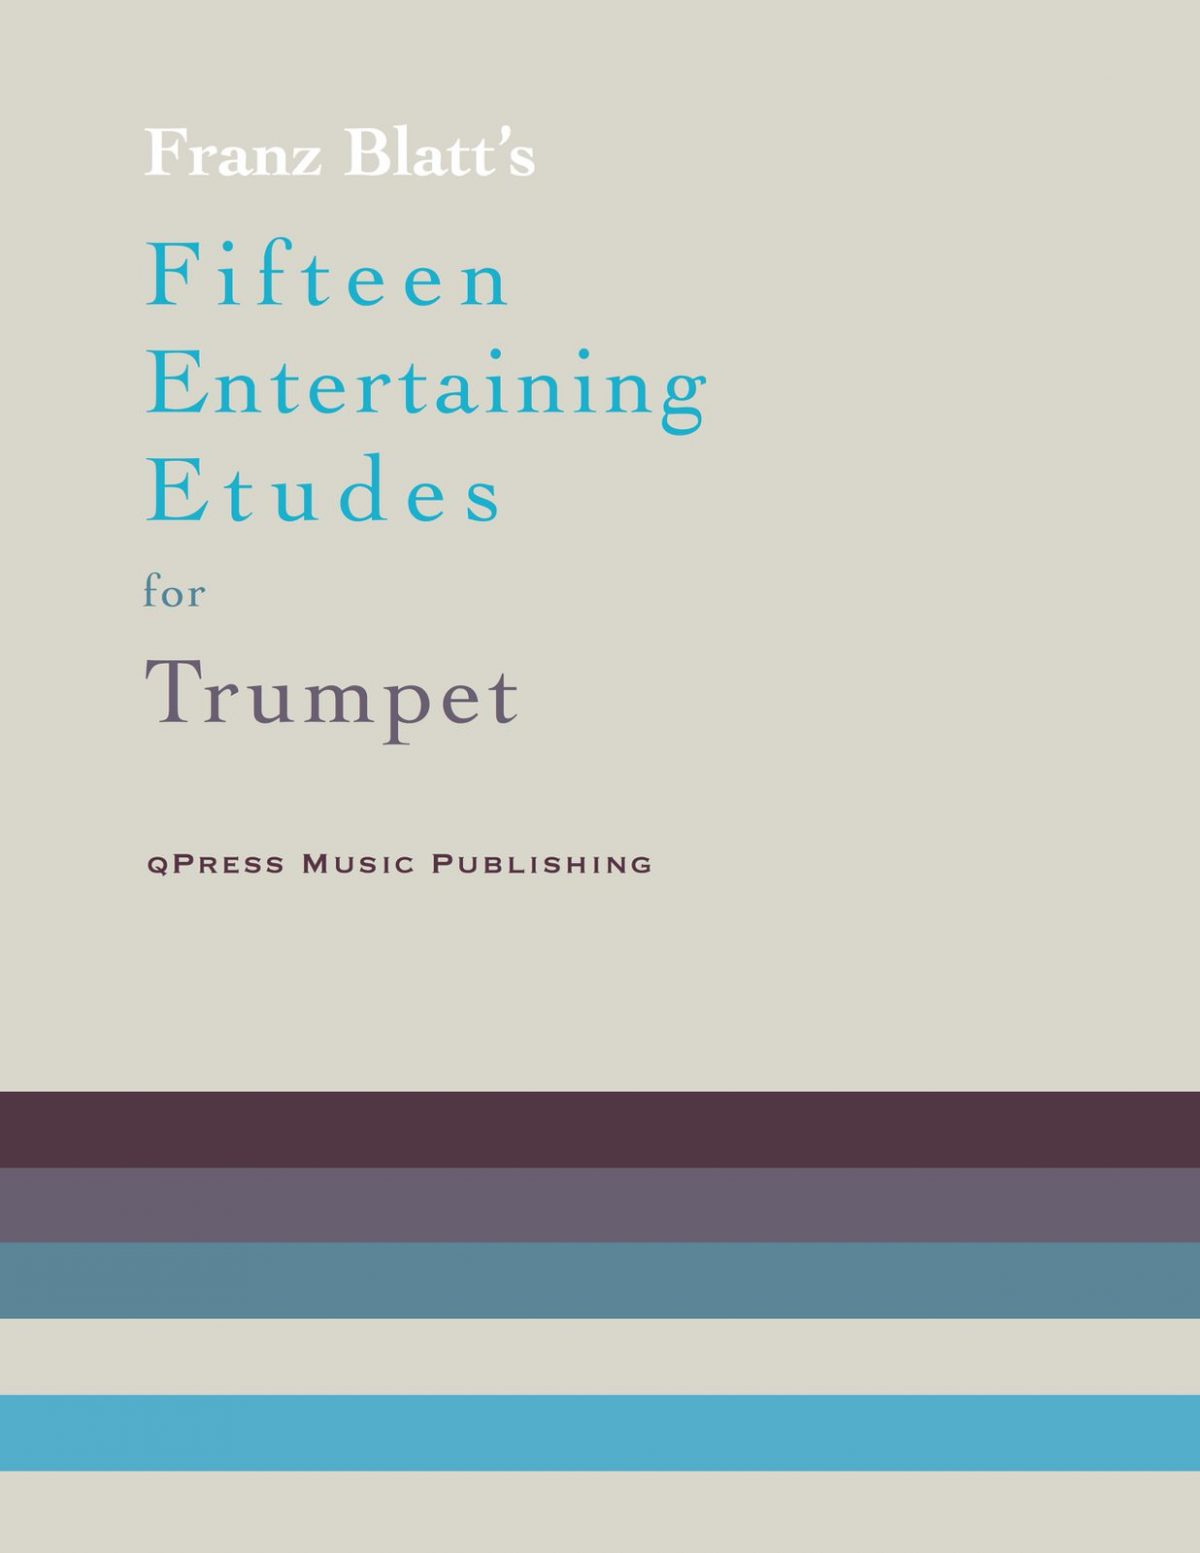 Blatt, 15 Entertaining Etudes-p01